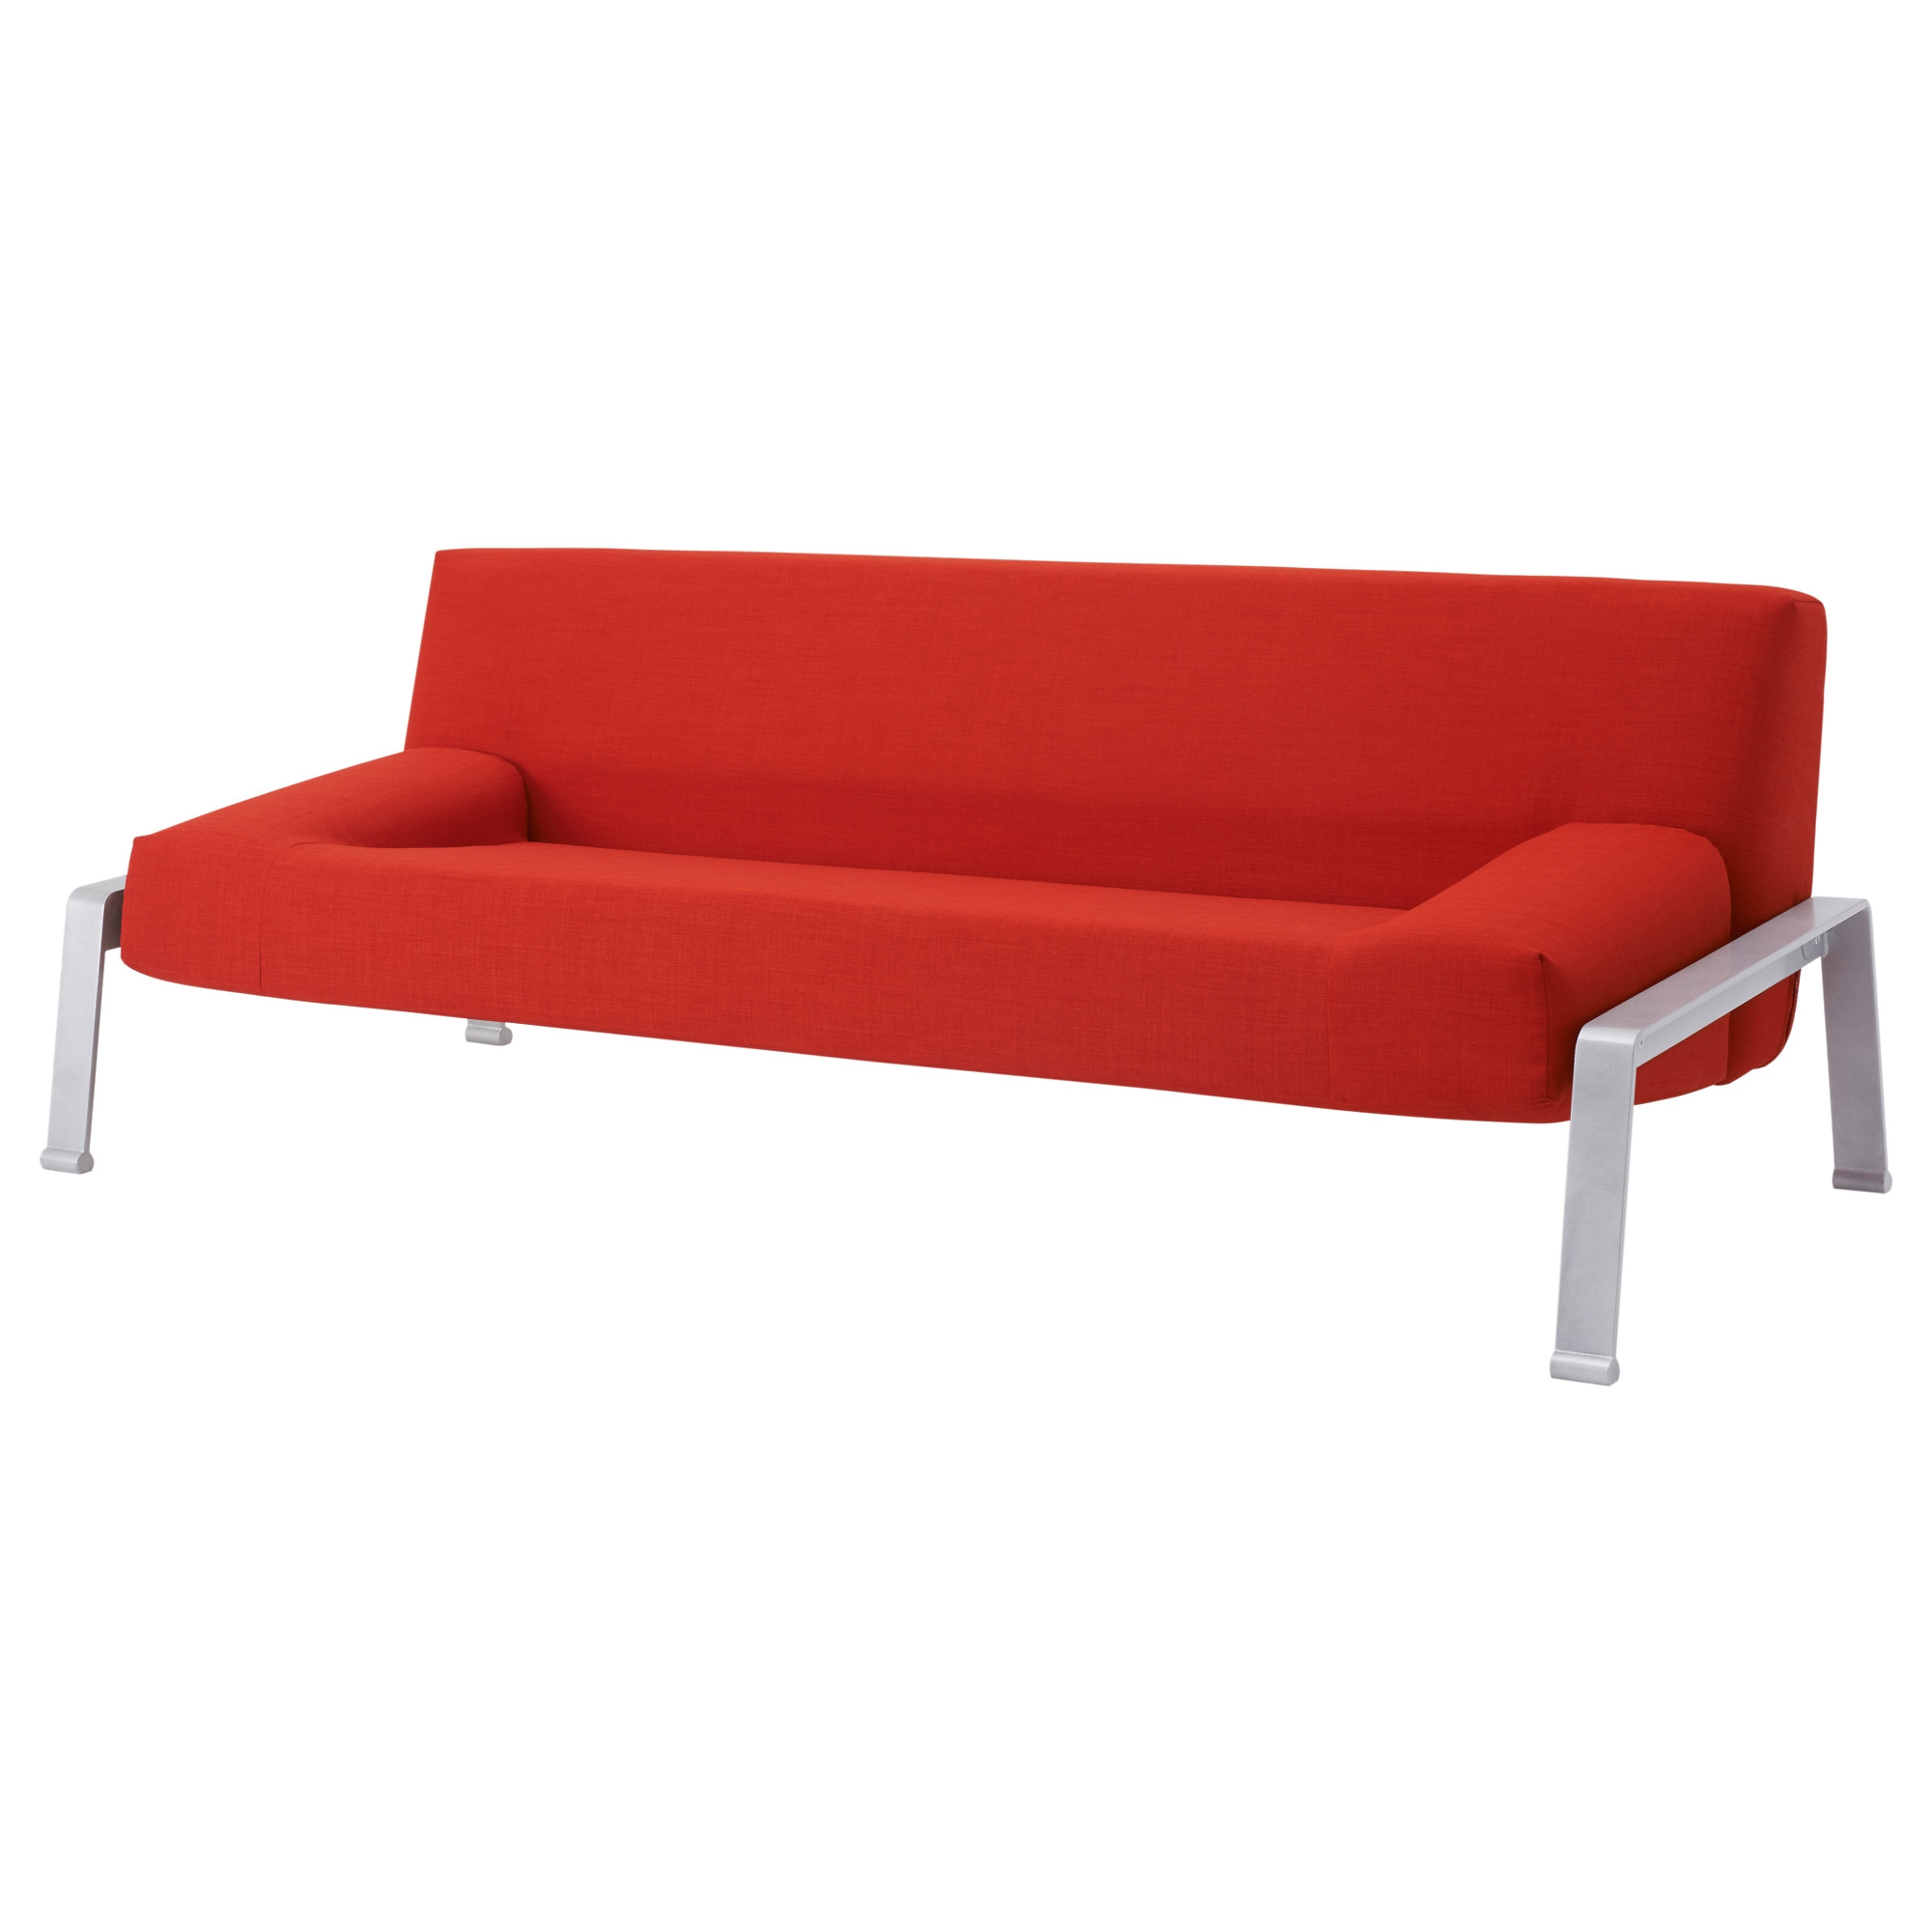 Sofabett ikea  ERSKA Sleeper sofa - Skiftebo orange - IKEA